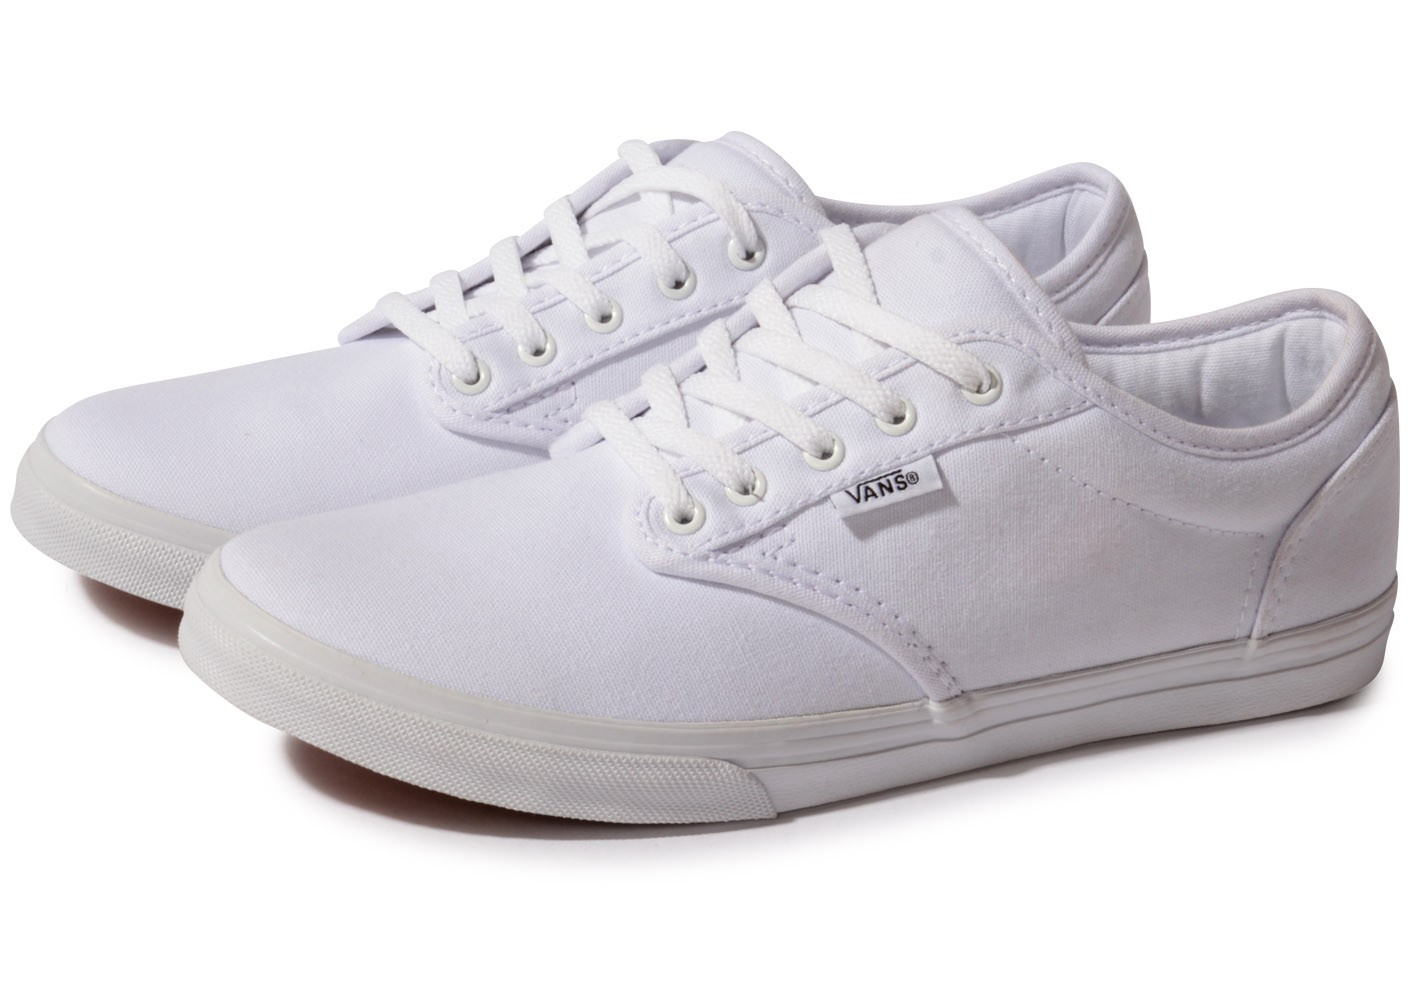 Vans Atwood blanche - Chaussures Chaussures - Chausport